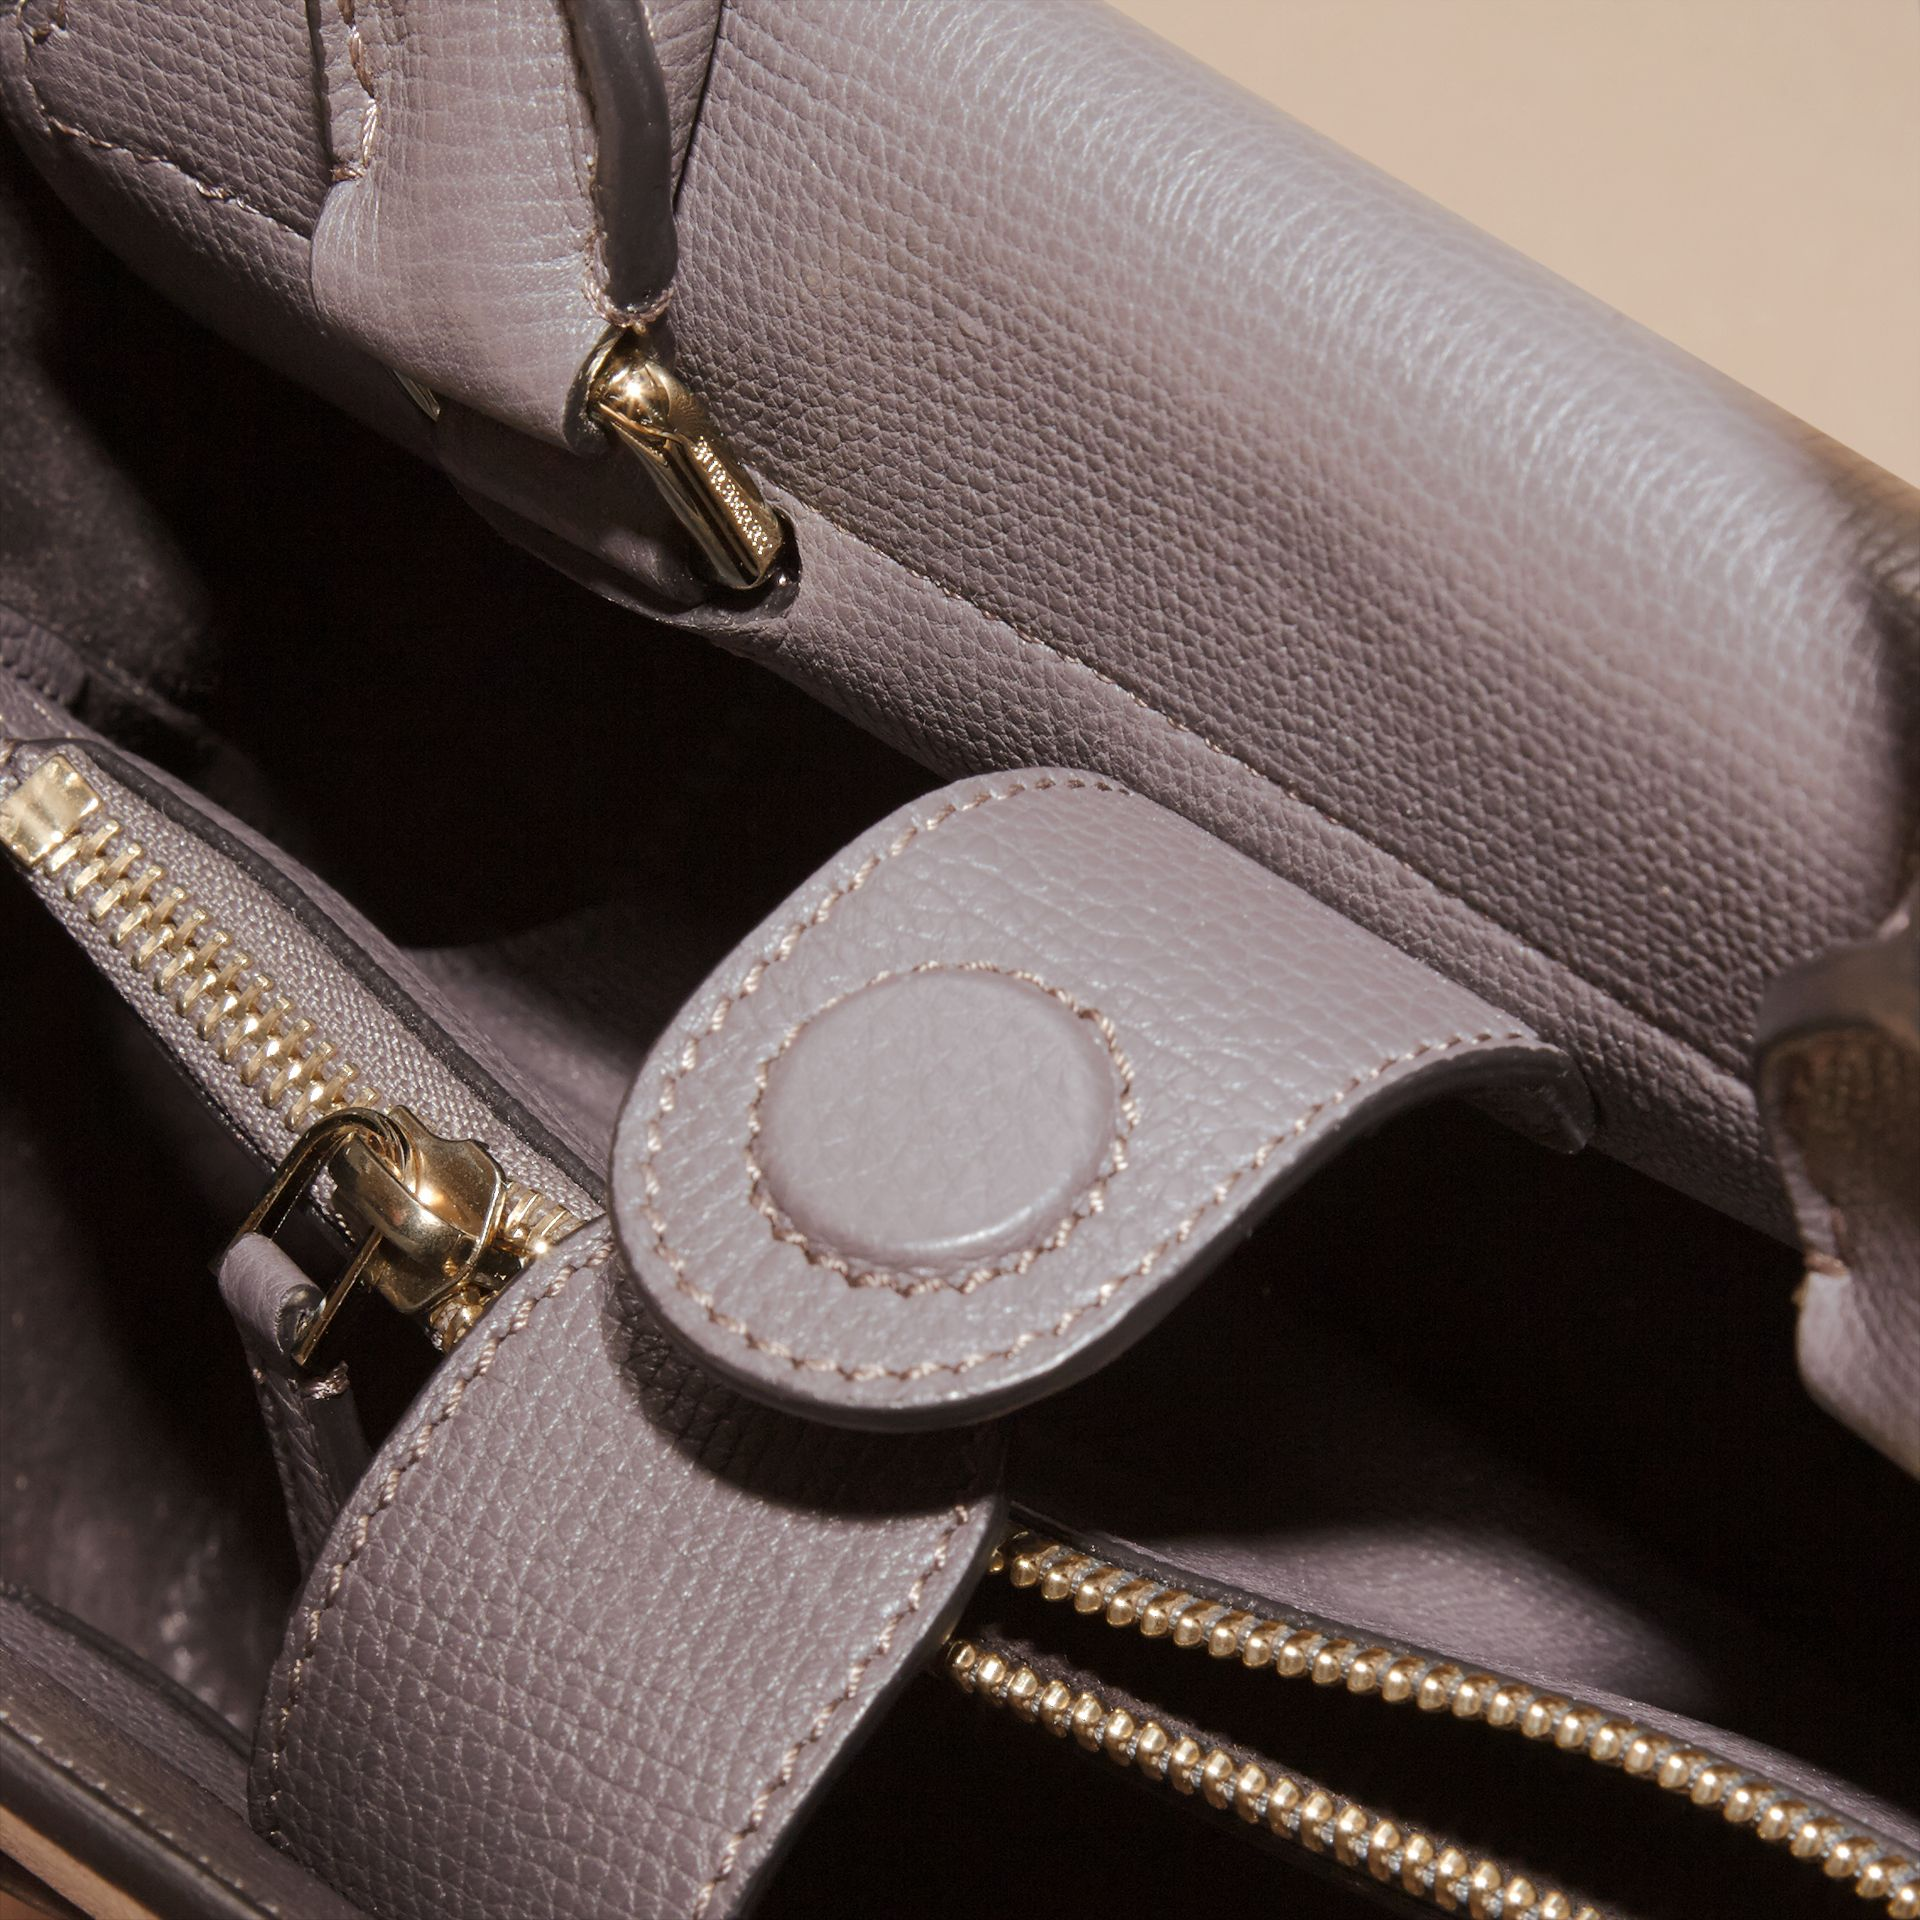 Sepia grey The Small Saddle Bag in Grainy Bonded Leather Sepia Grey - gallery image 5